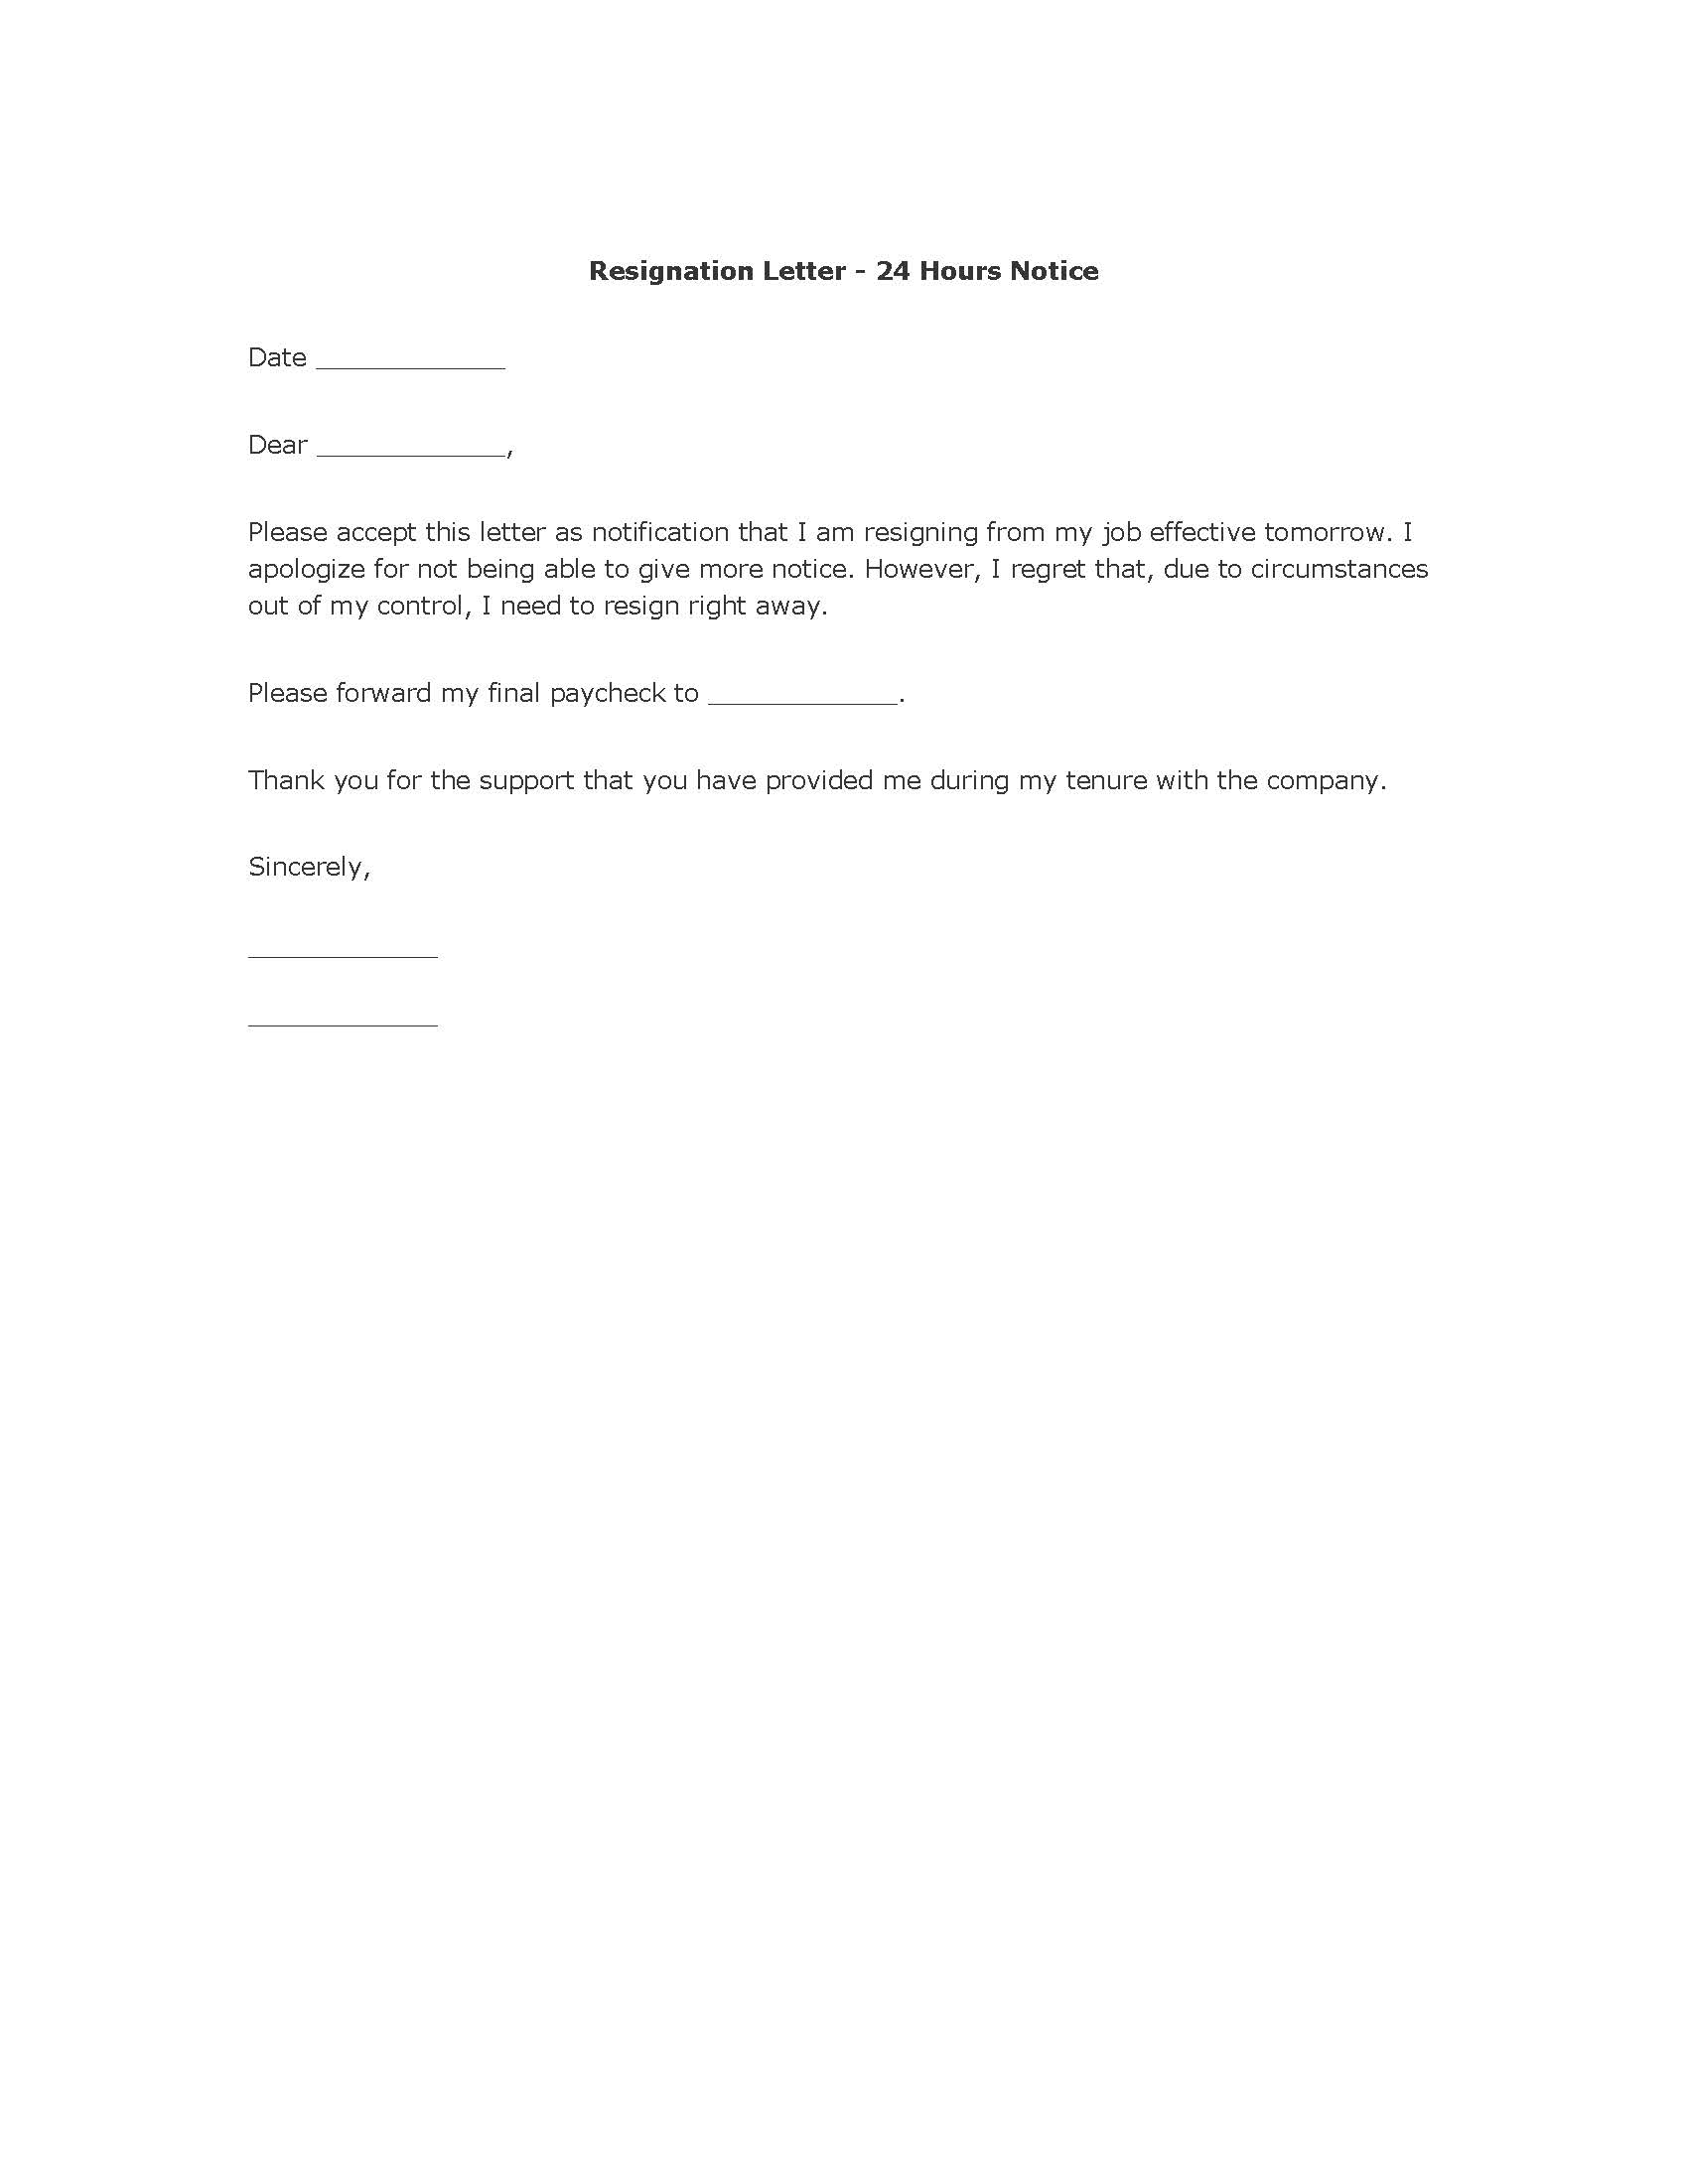 Job resignation letter templates spiritdancerdesigns Gallery